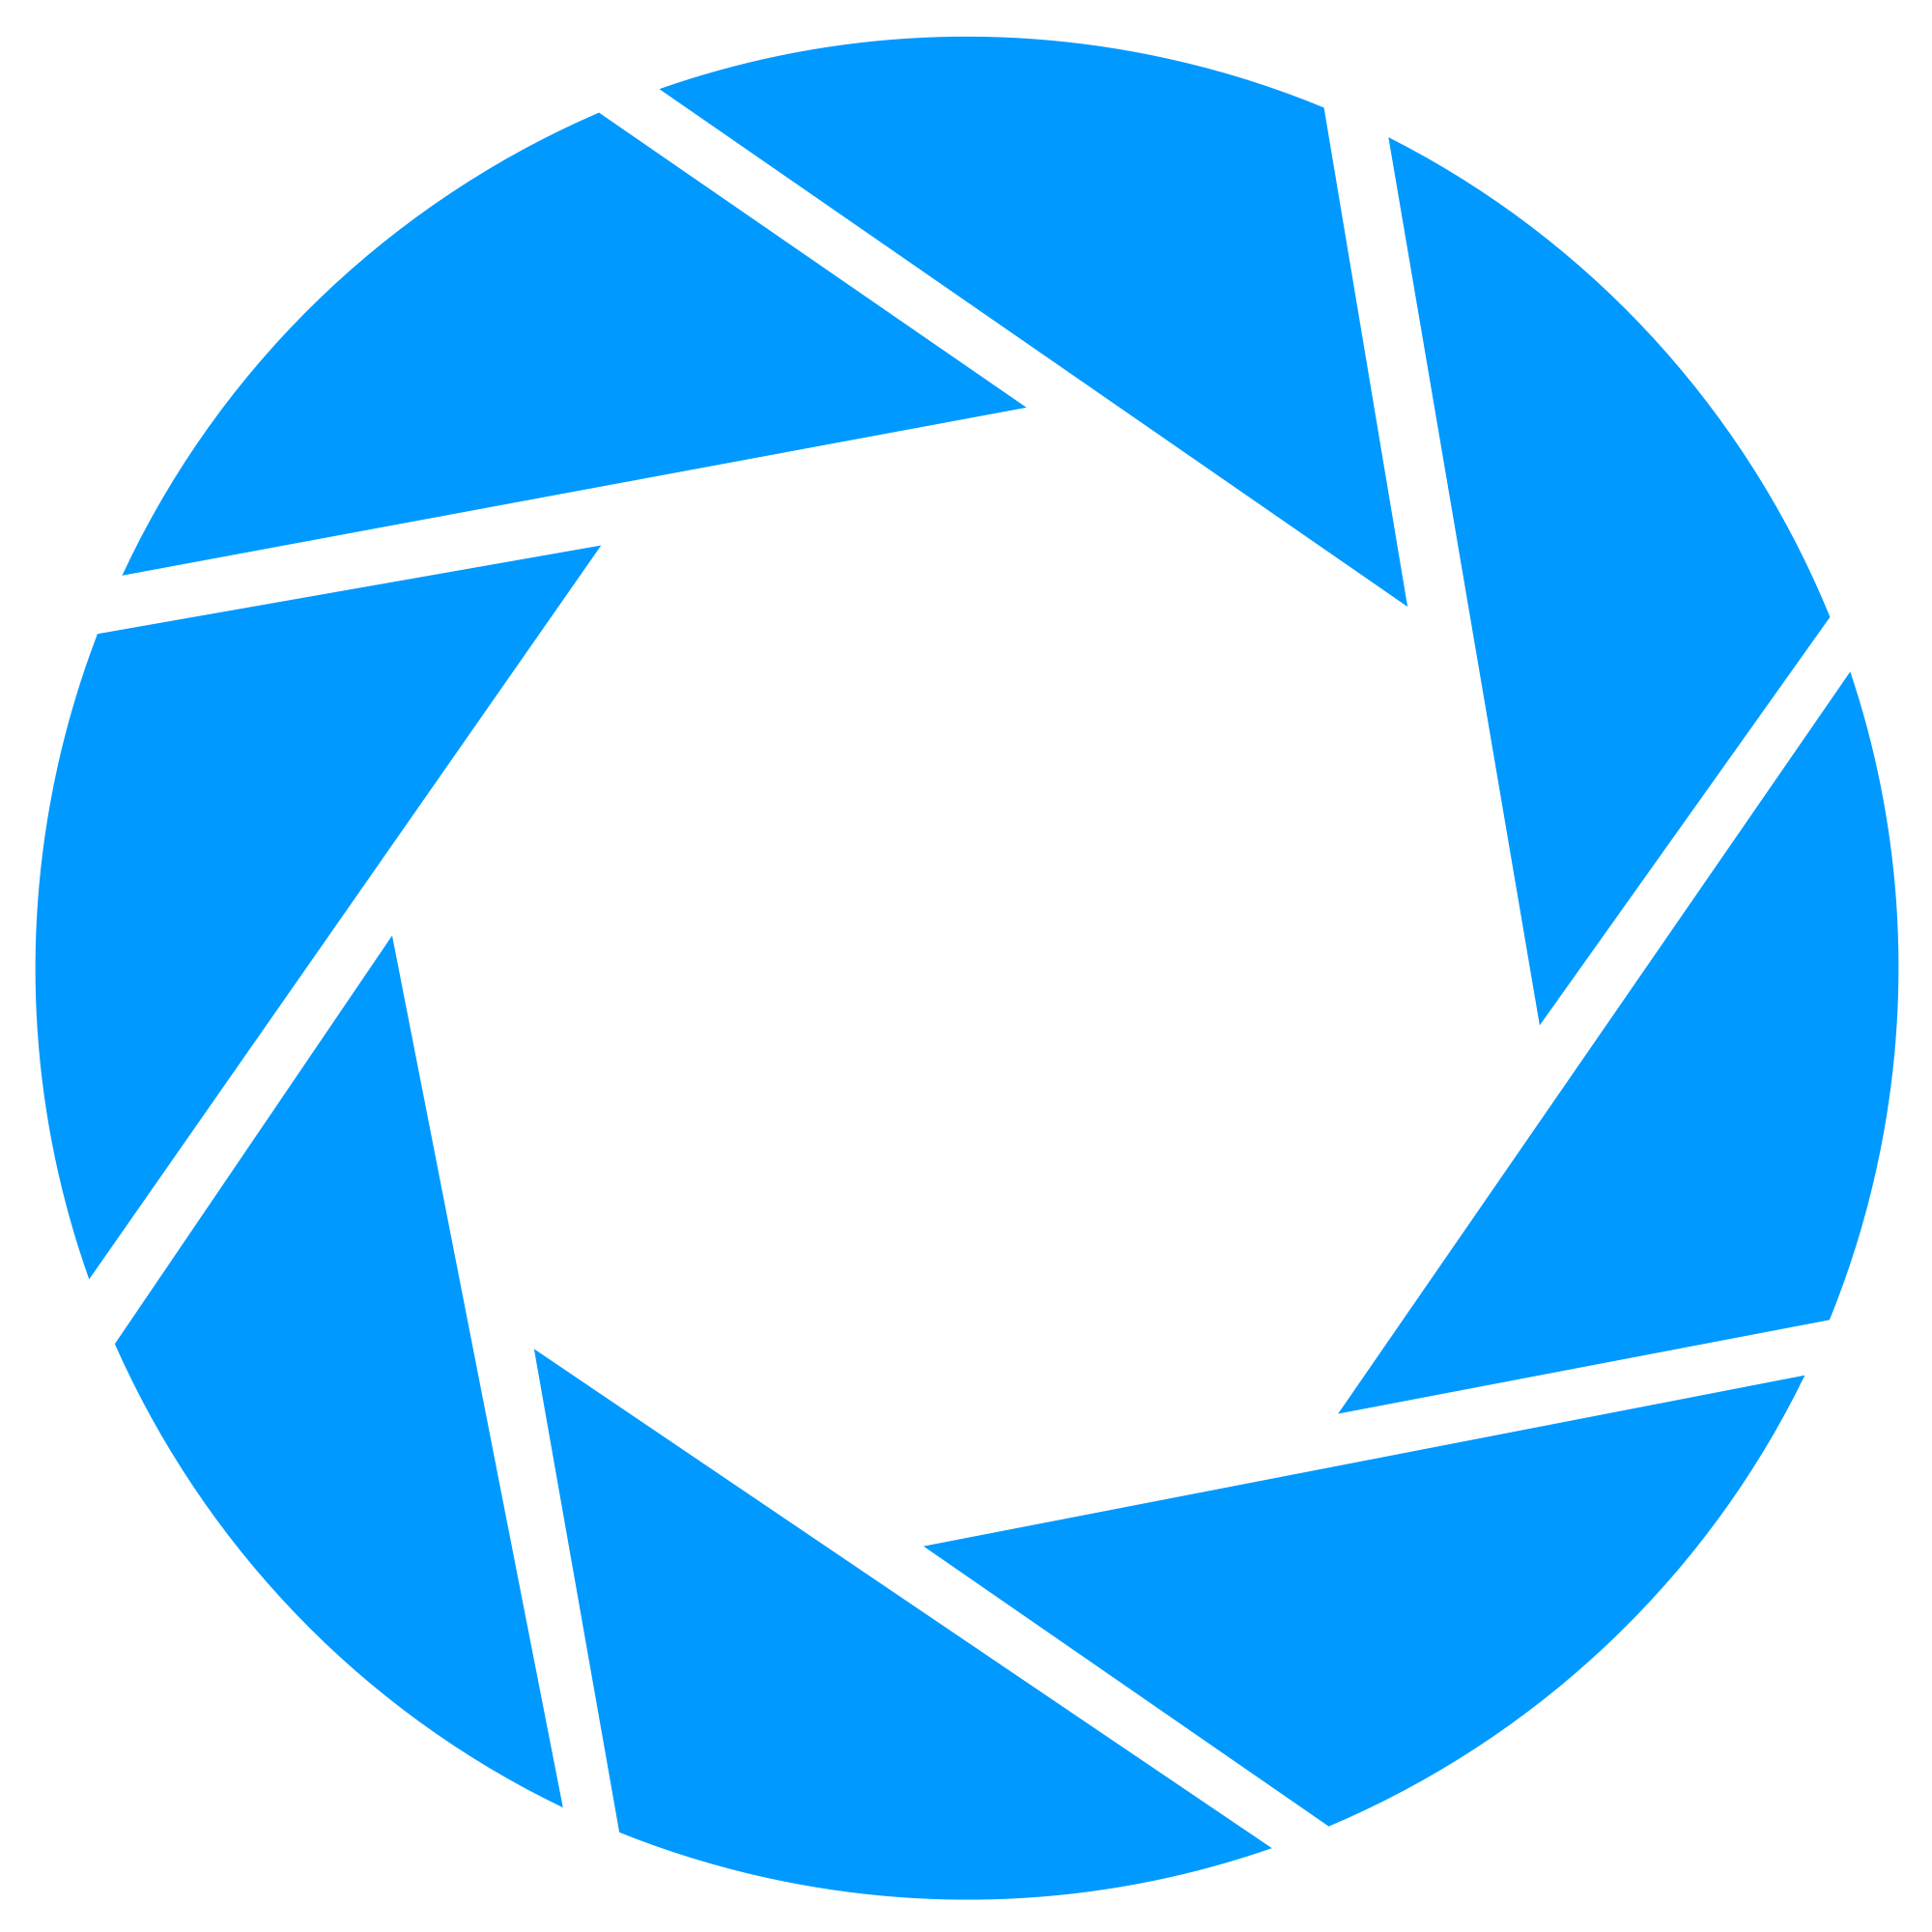 Aperture science logo png